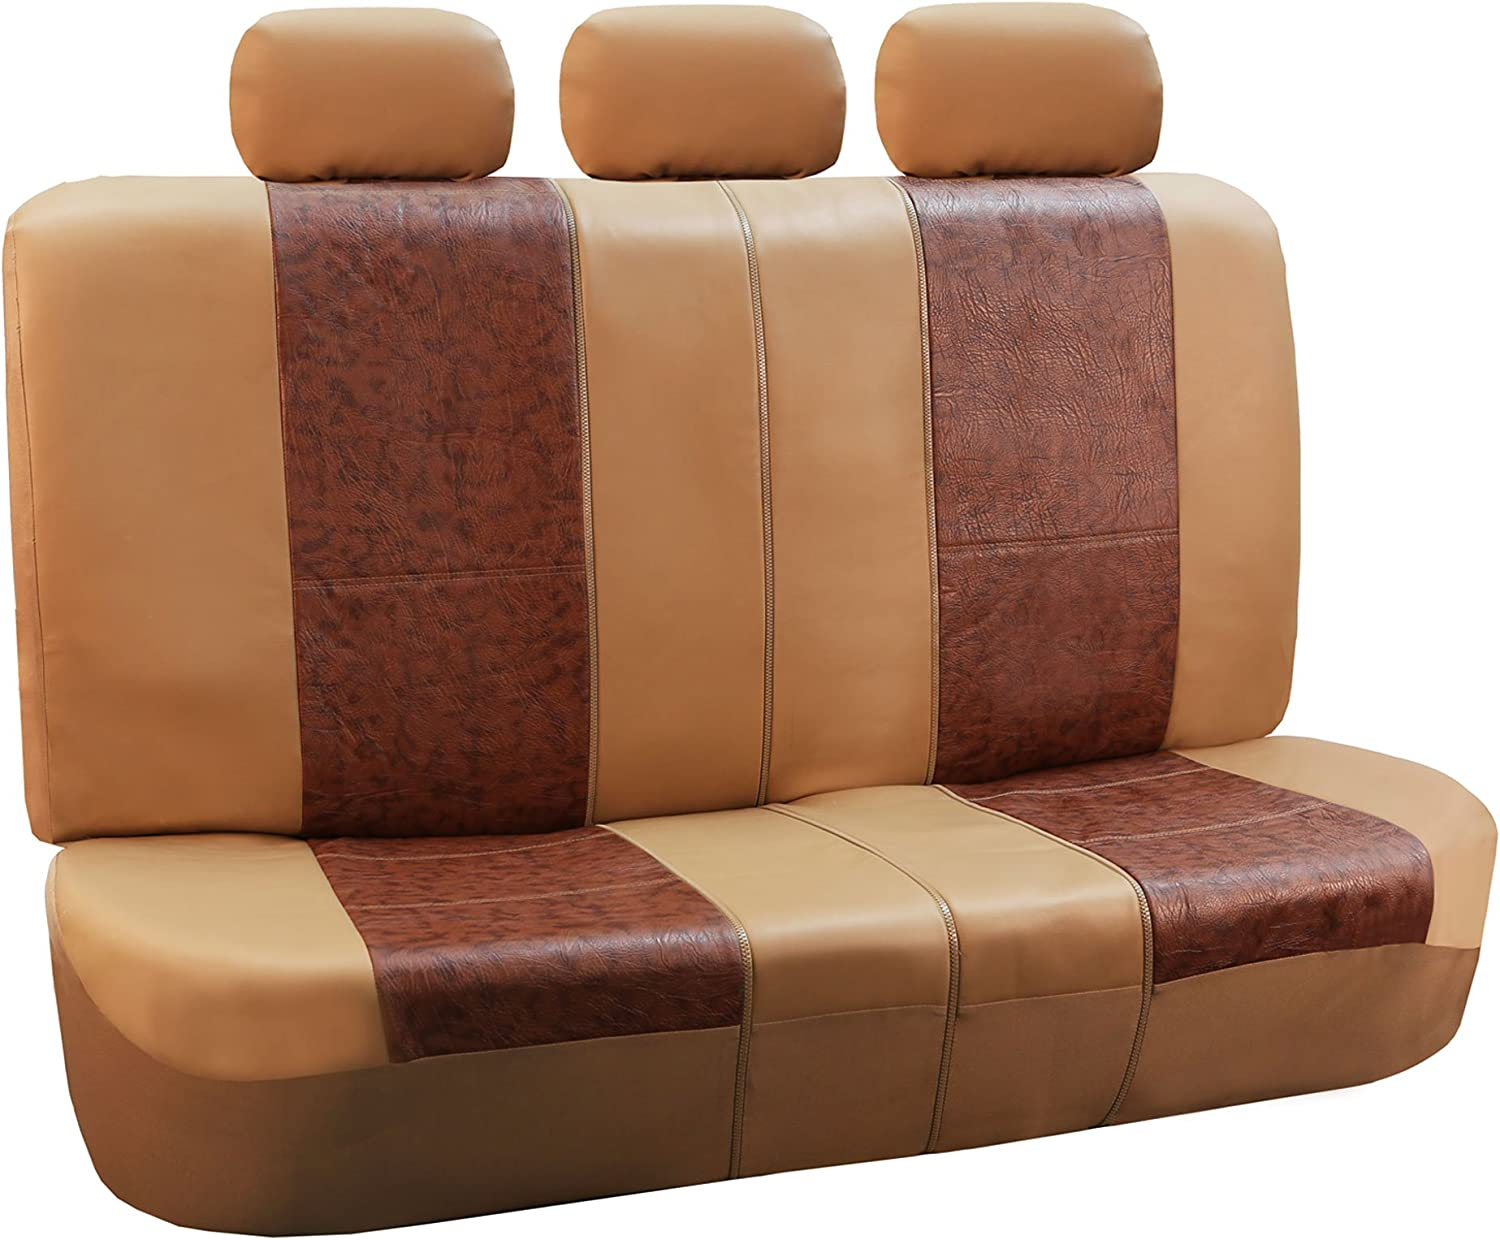 Airbag Compatible and Split Bench FH Group PU160BROWNGRAY115 Brown//Gray PU Textured High Back Leather Seat Cover